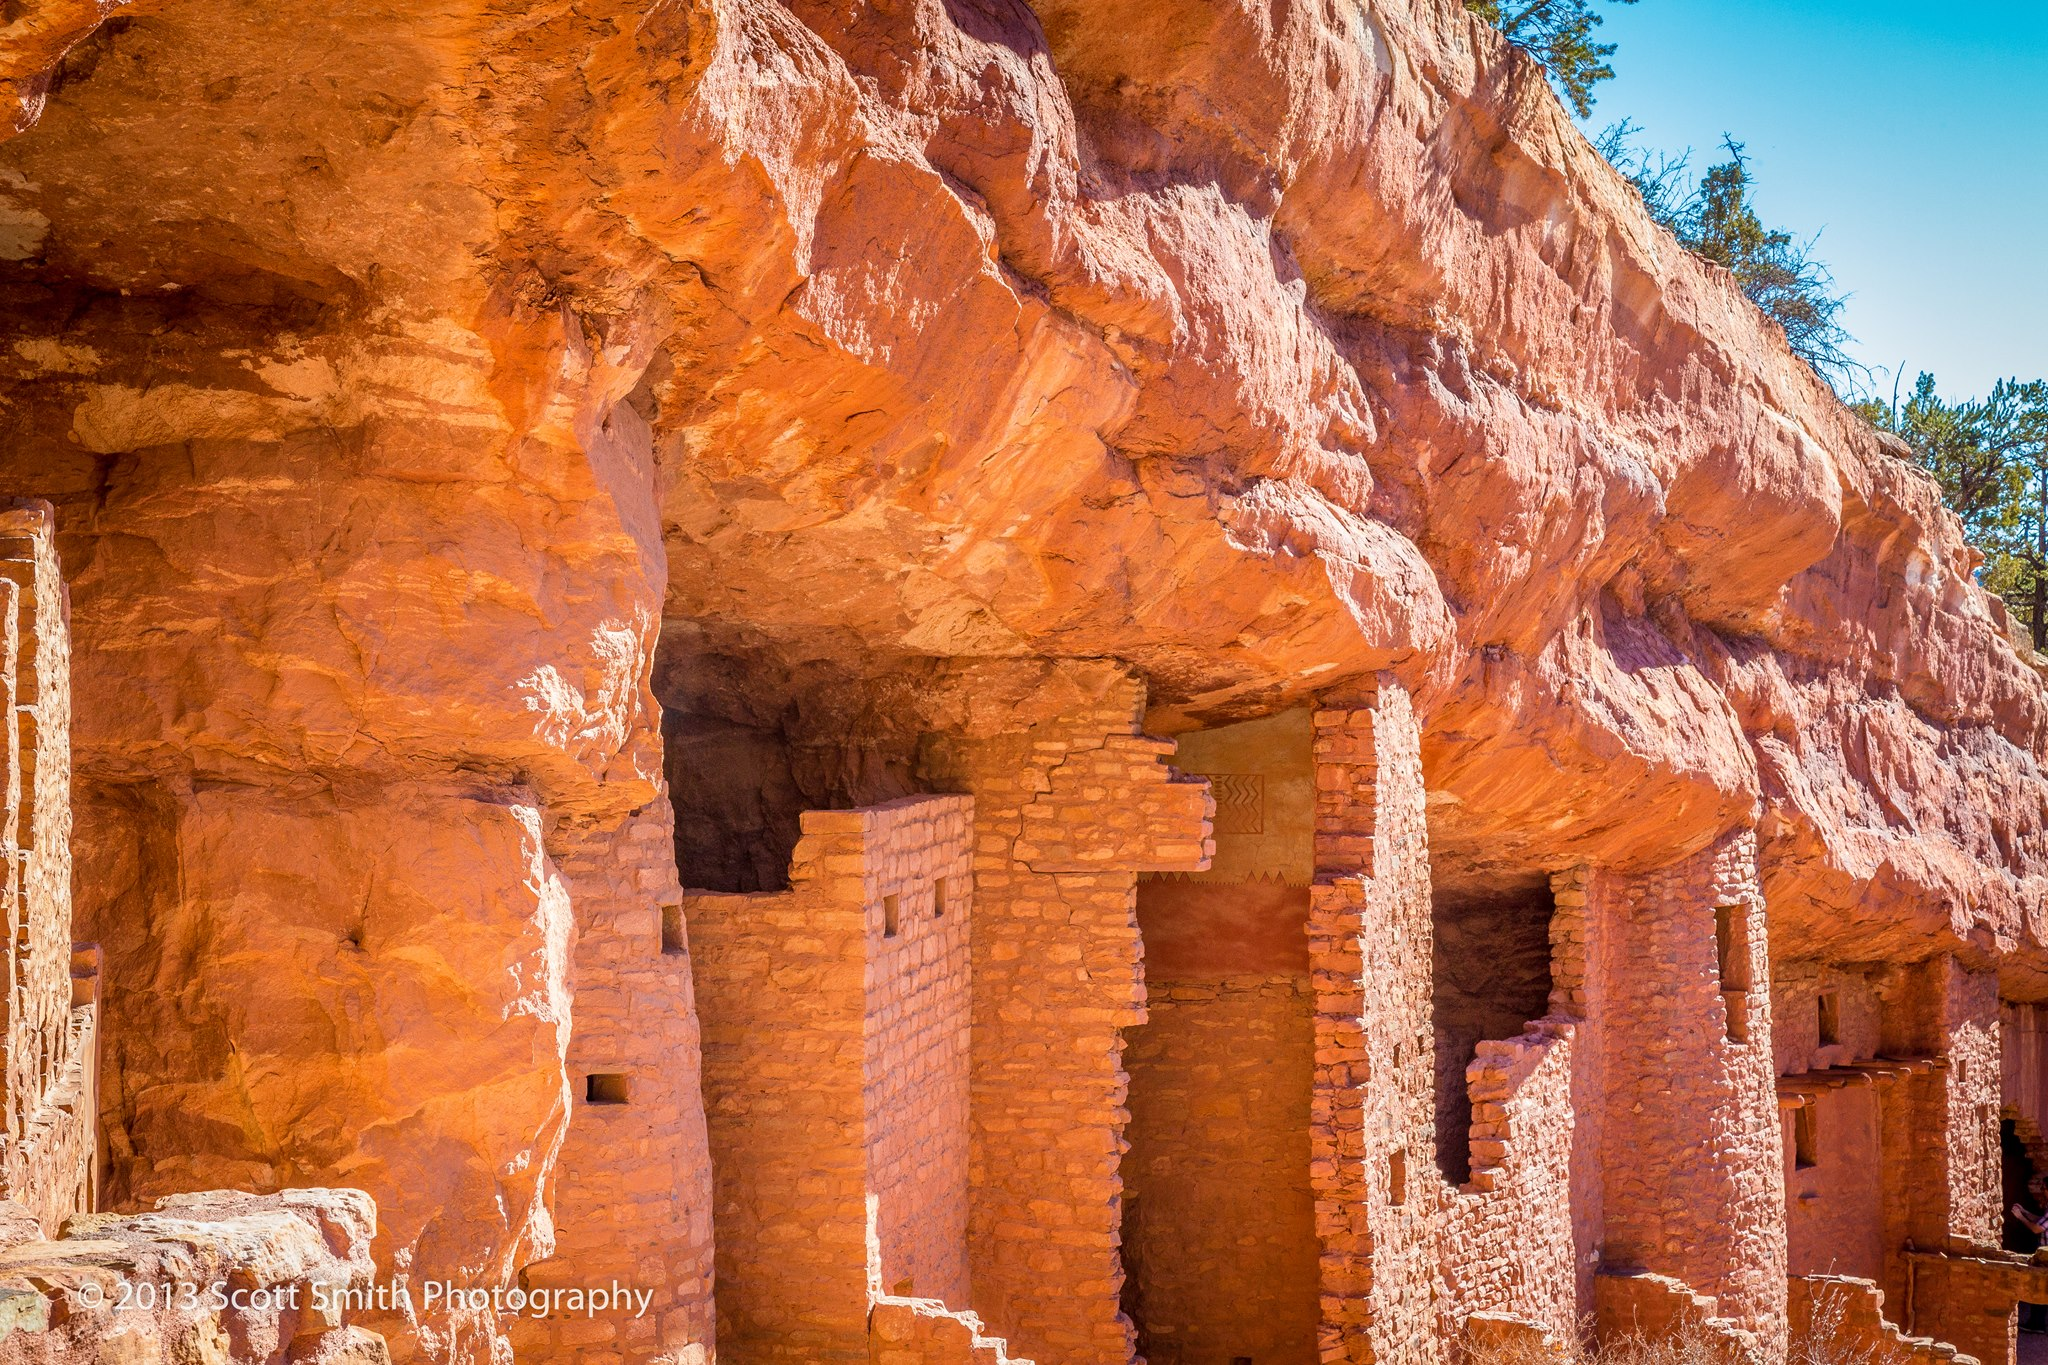 Ancient Dwellings - The Manitou Cliff Dwellings, Colorado. by D Scott Smith